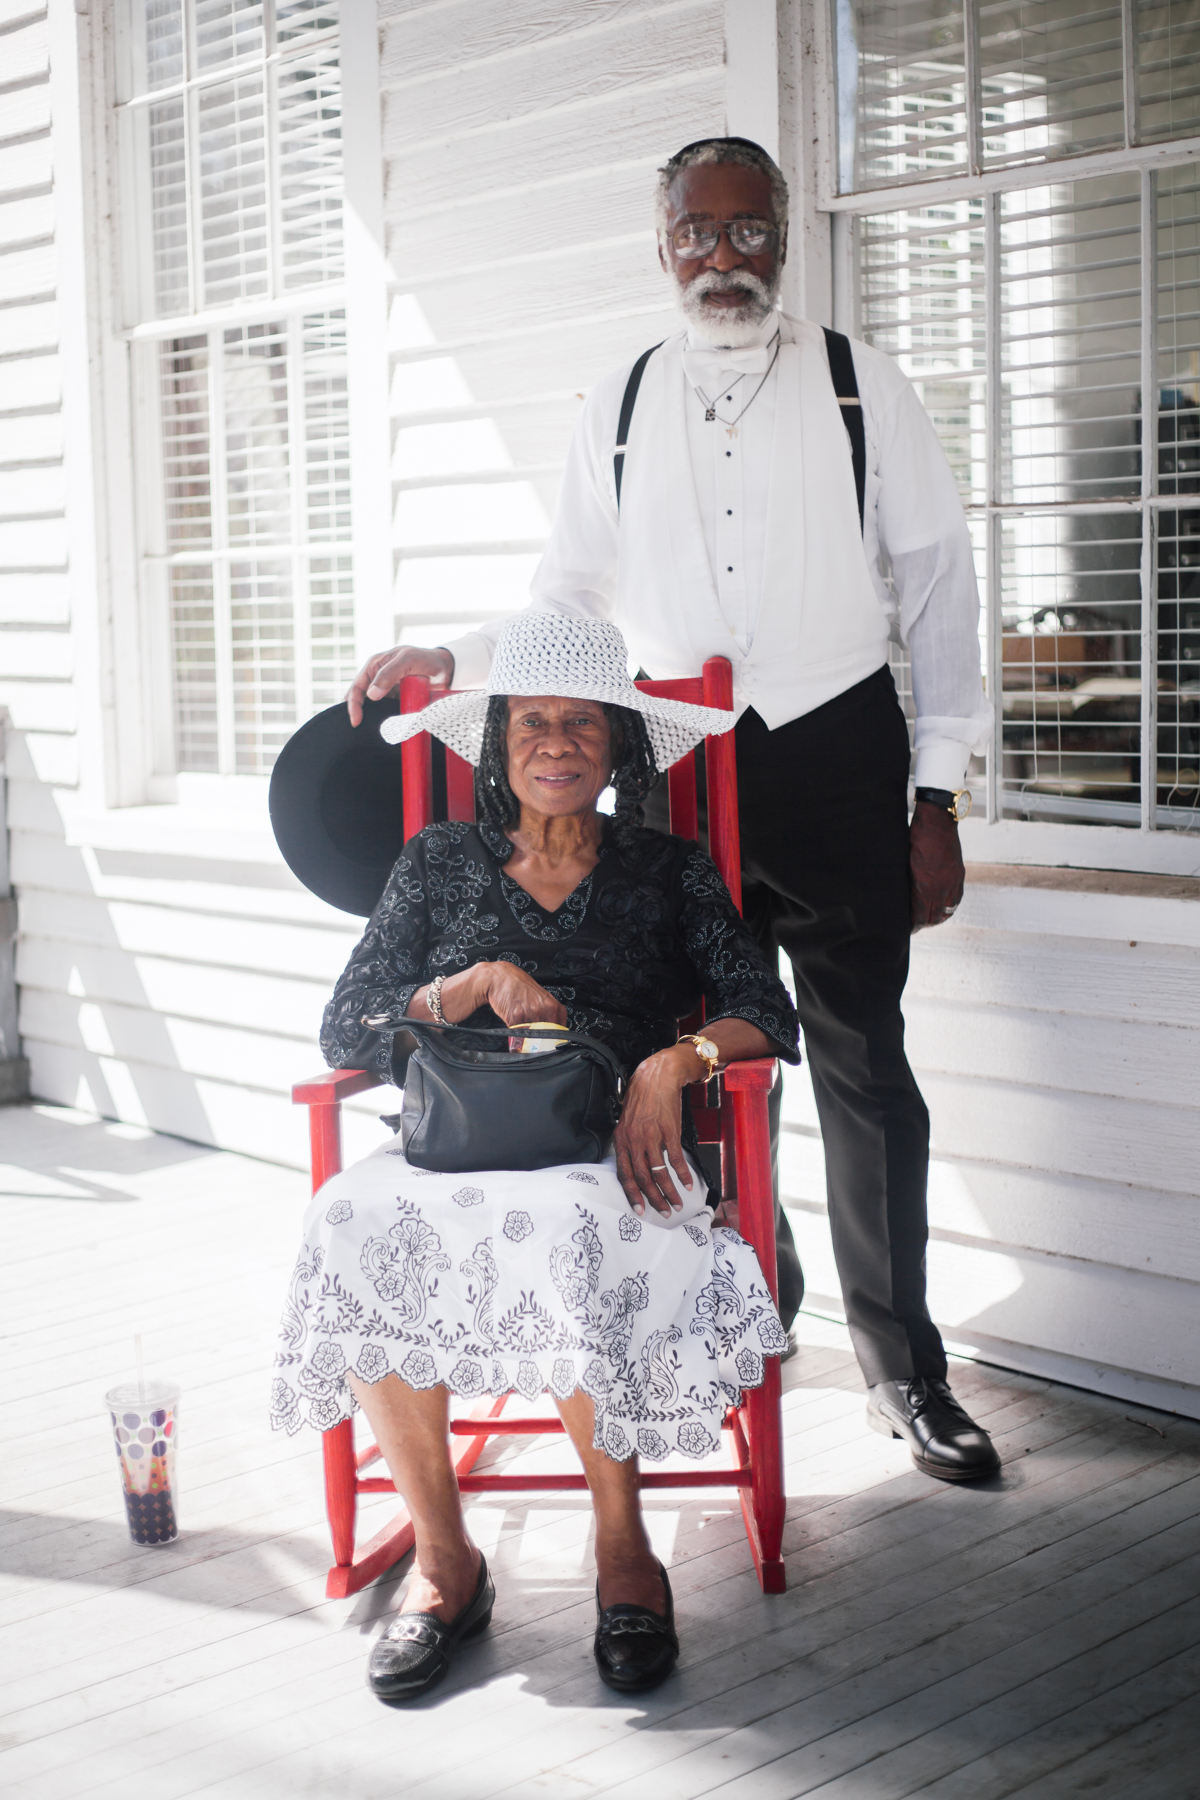 Dr. Collins serves as the chairman of the McIntosh County Historic Preservation Commission. Here, he poses for a portrait with Mrs. Eunice M. Moore, a board member of the commission, on the porch of the Burning of Darien museum that houses his office.